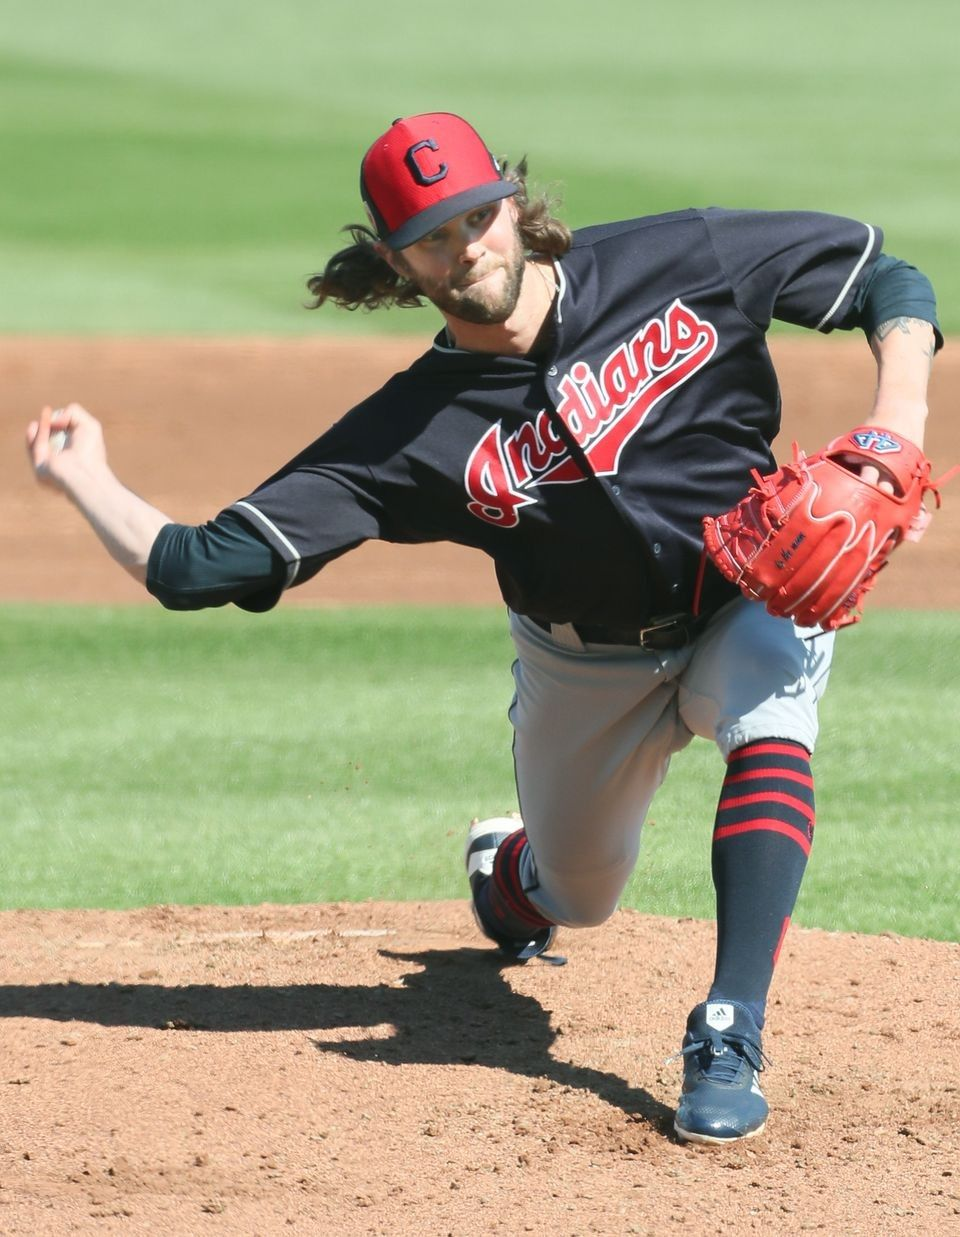 Cleveland Indians Adam Cimber Pitched A Shutout 3rd Inning Against The Cincinnati Reds At Goodye Cleveland Indians Major League Baseball Teams Cincinnati Reds